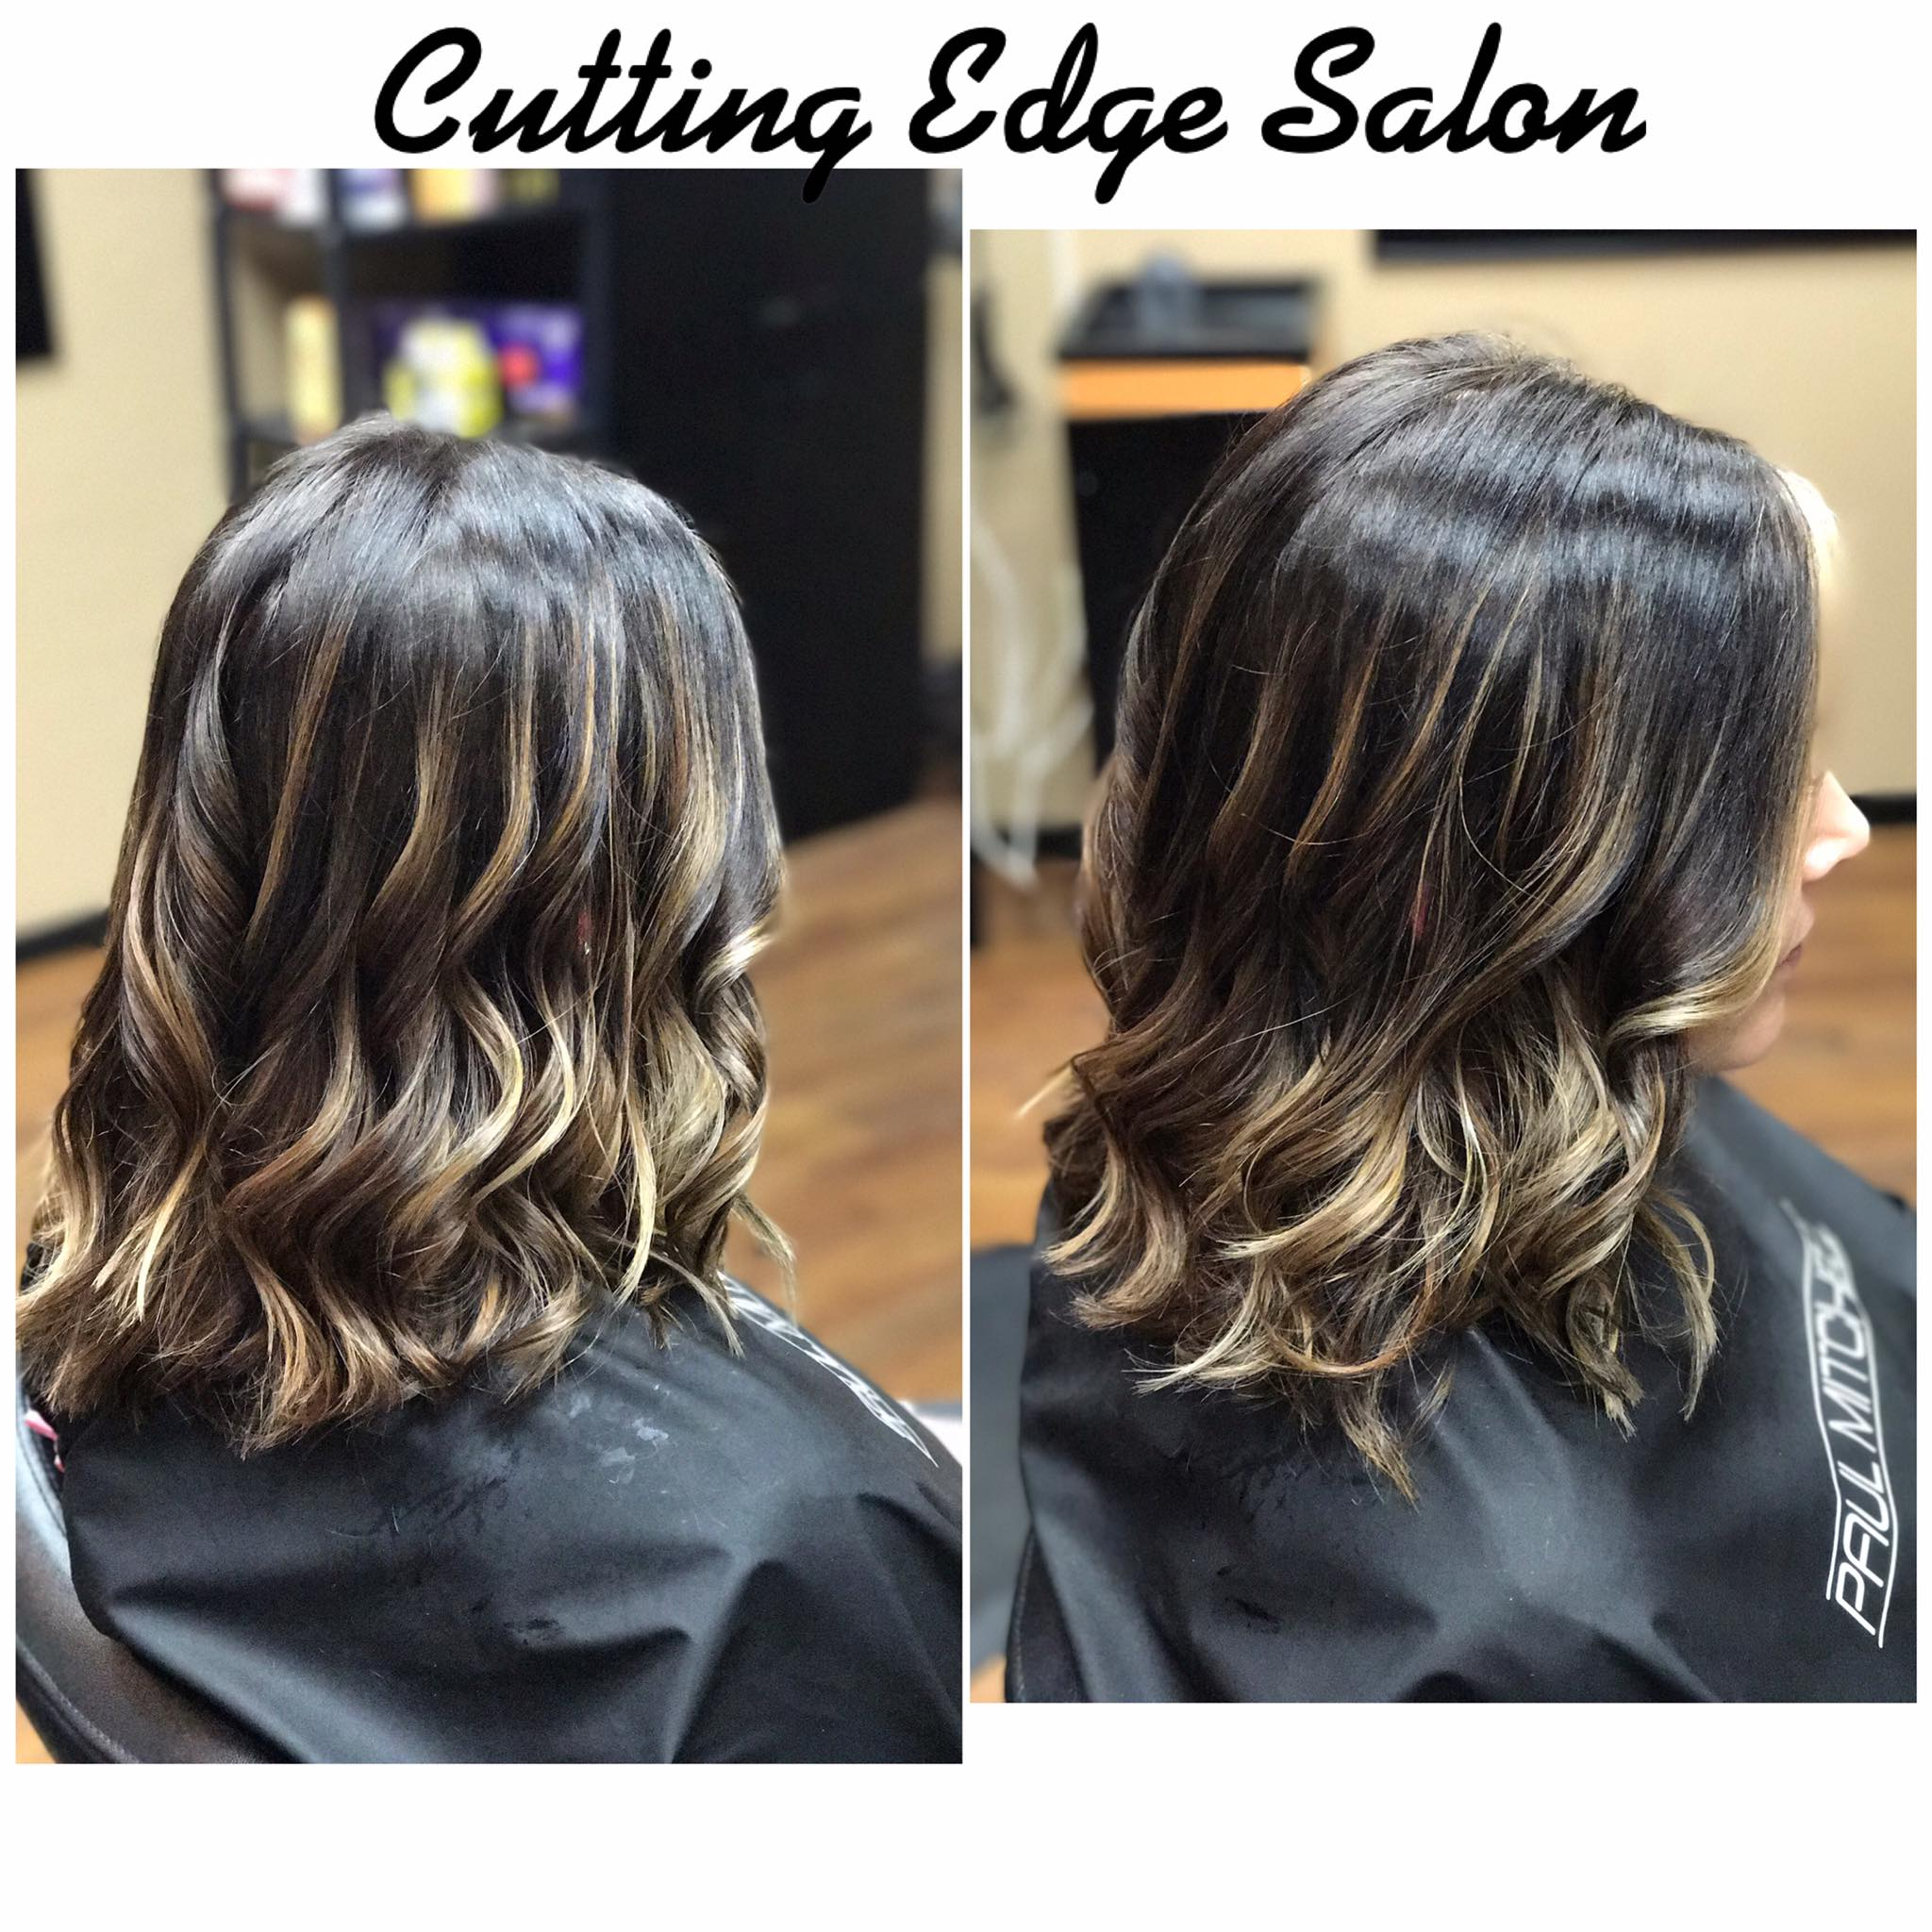 Cutting Edge Salon Foley MN hair style